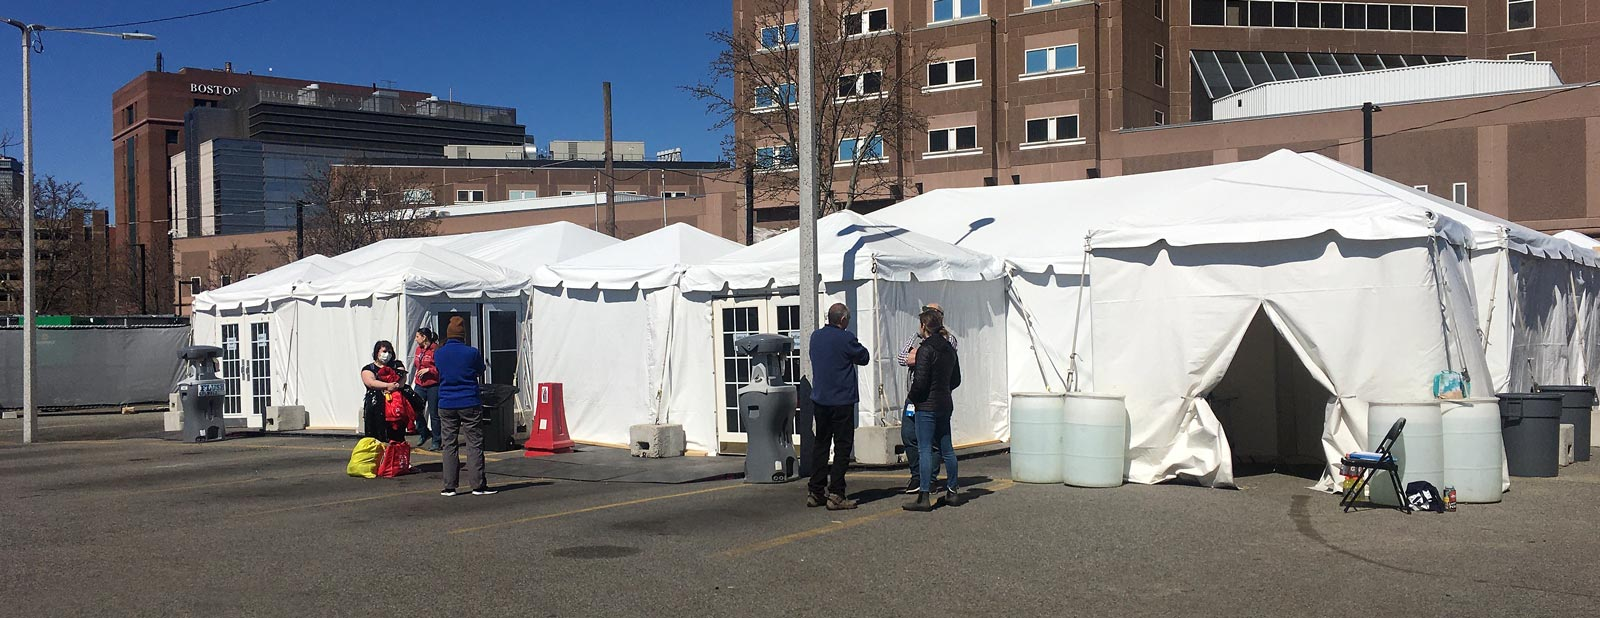 Testing tents for people experiencing homelessness in Boston, MA.